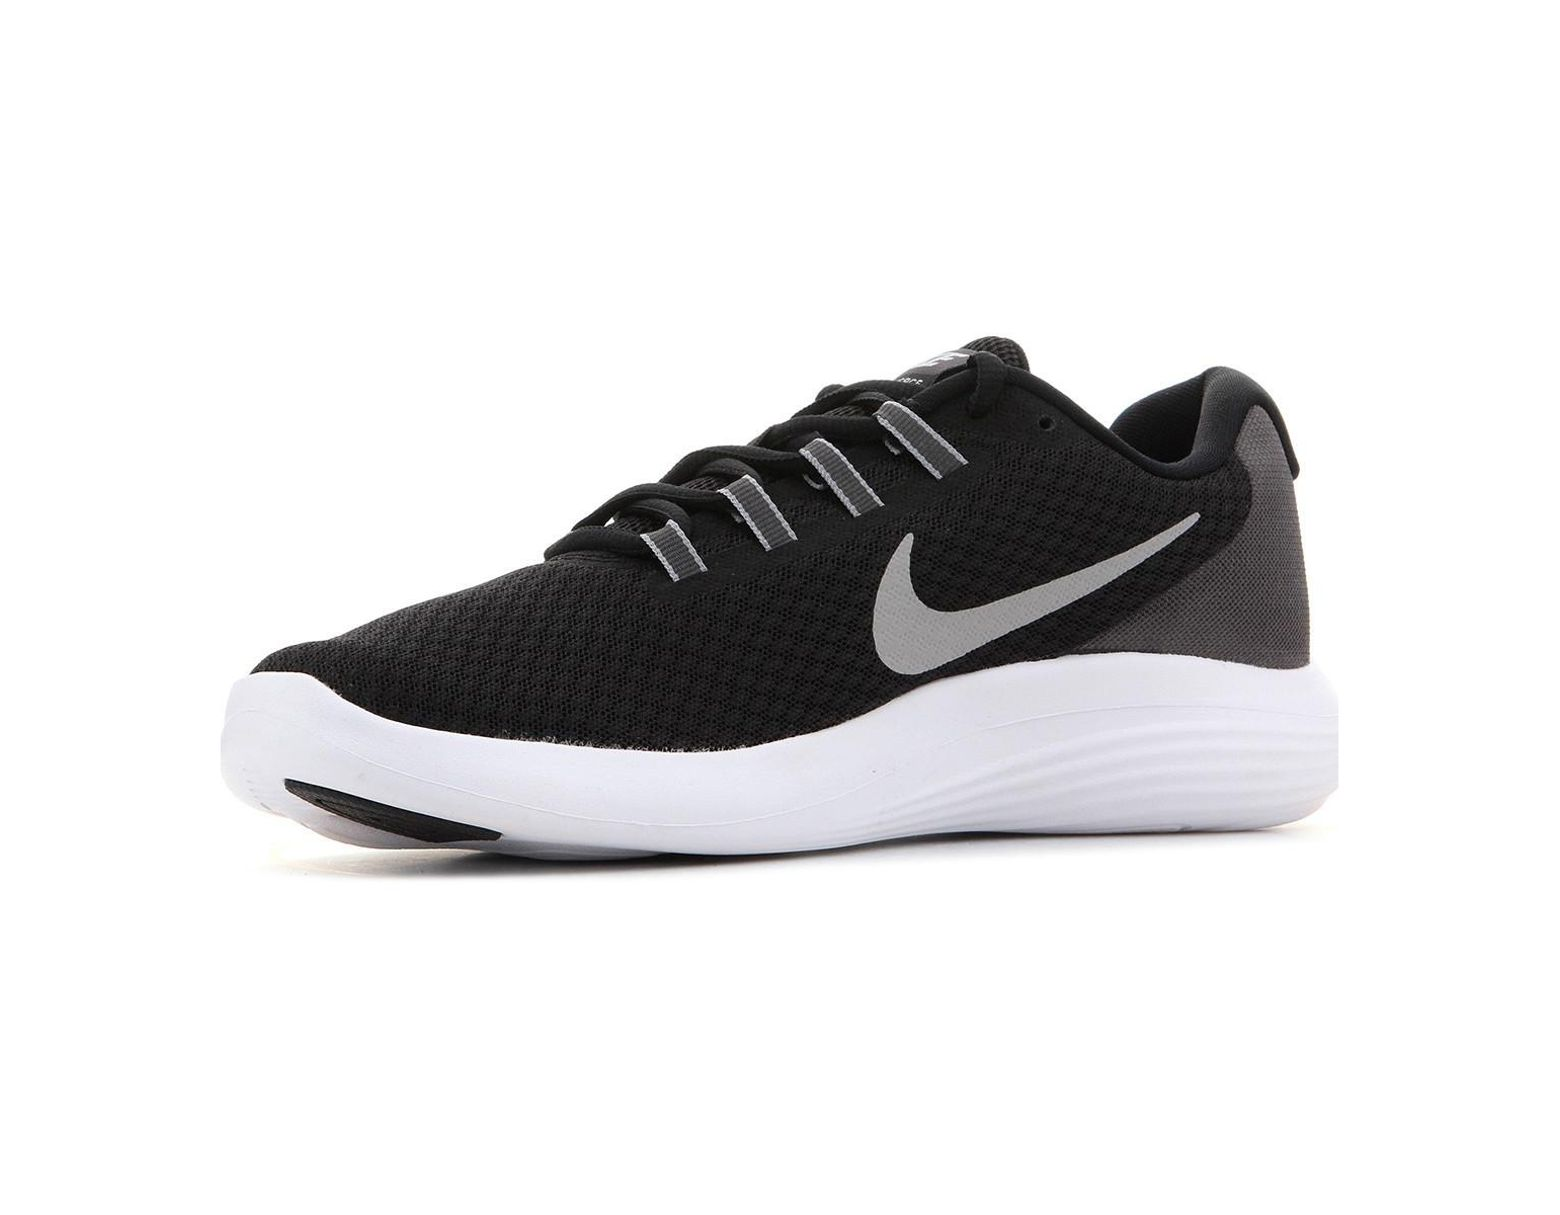 5f5c34b17339d Nike Mens Lunarconverge 852462-001 Men s Shoes (trainers) In Black in Black  for Men - Save 55% - Lyst